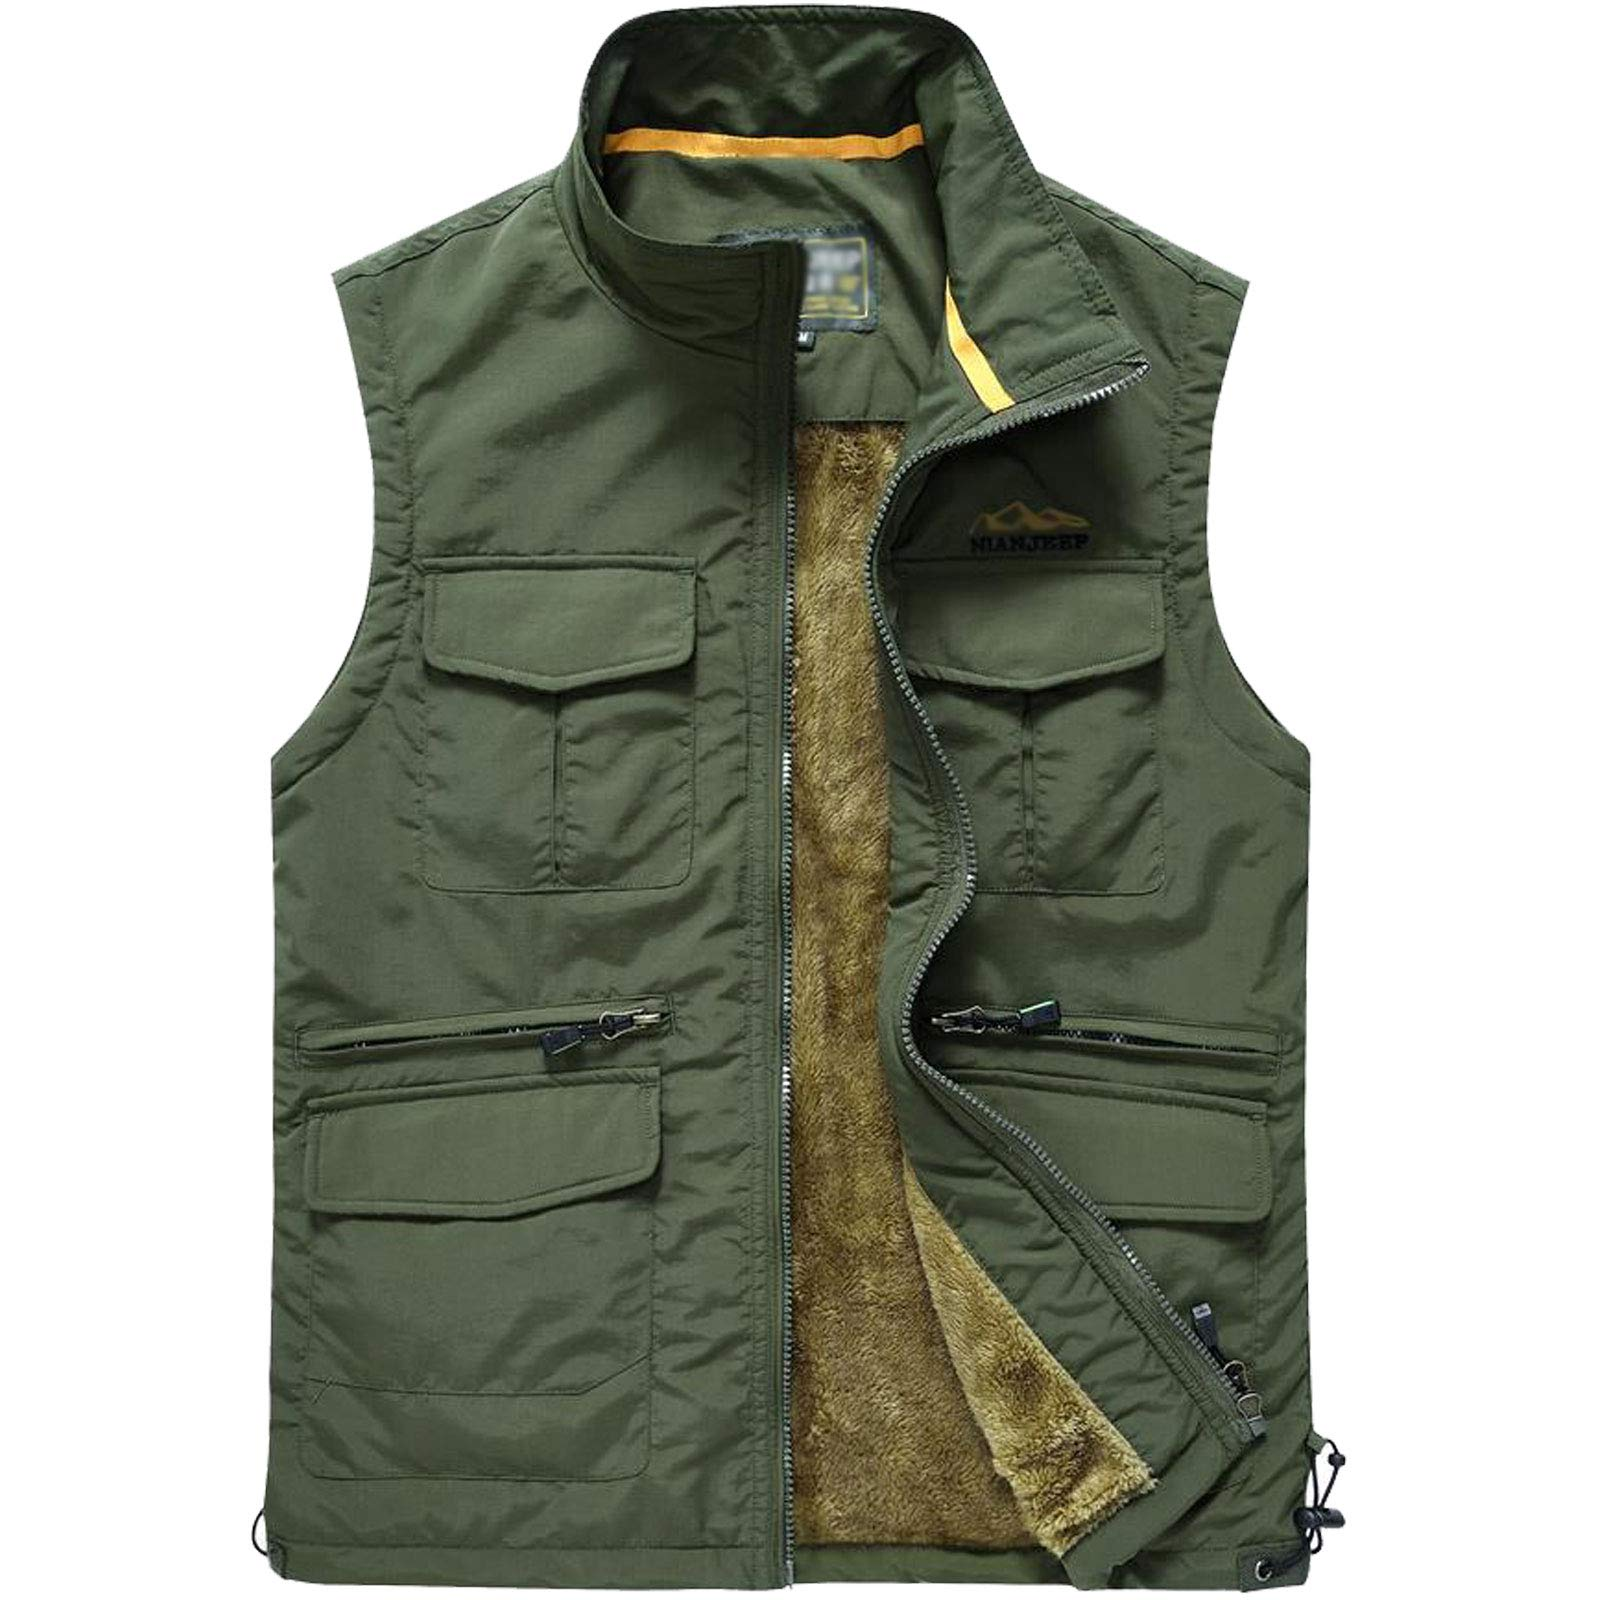 Flygo Men's Utility Outdoor Multi Pockets Fishing Photo Journalist Sports Vest (Large, Army Green #5) by Flygo